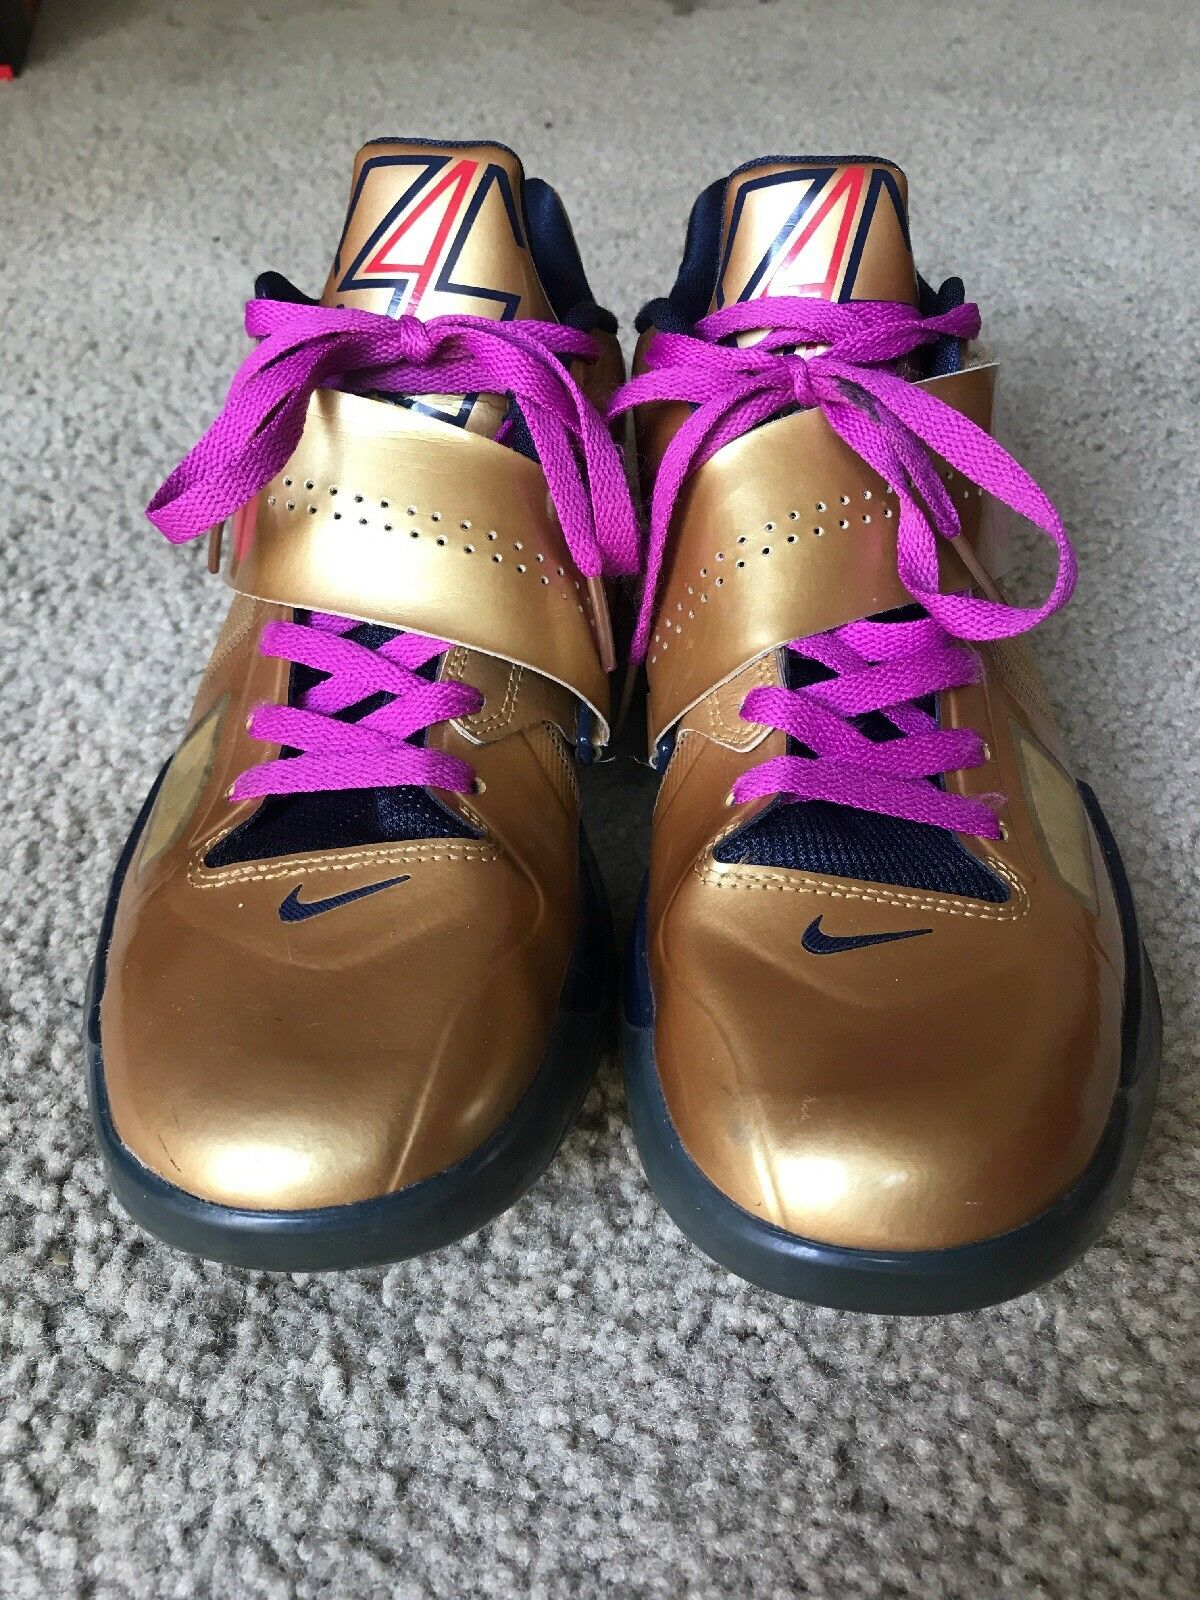 Nike GOLD Zoom KD 4 GOLD Nike MEDAL SIZE 10 b5dc4a